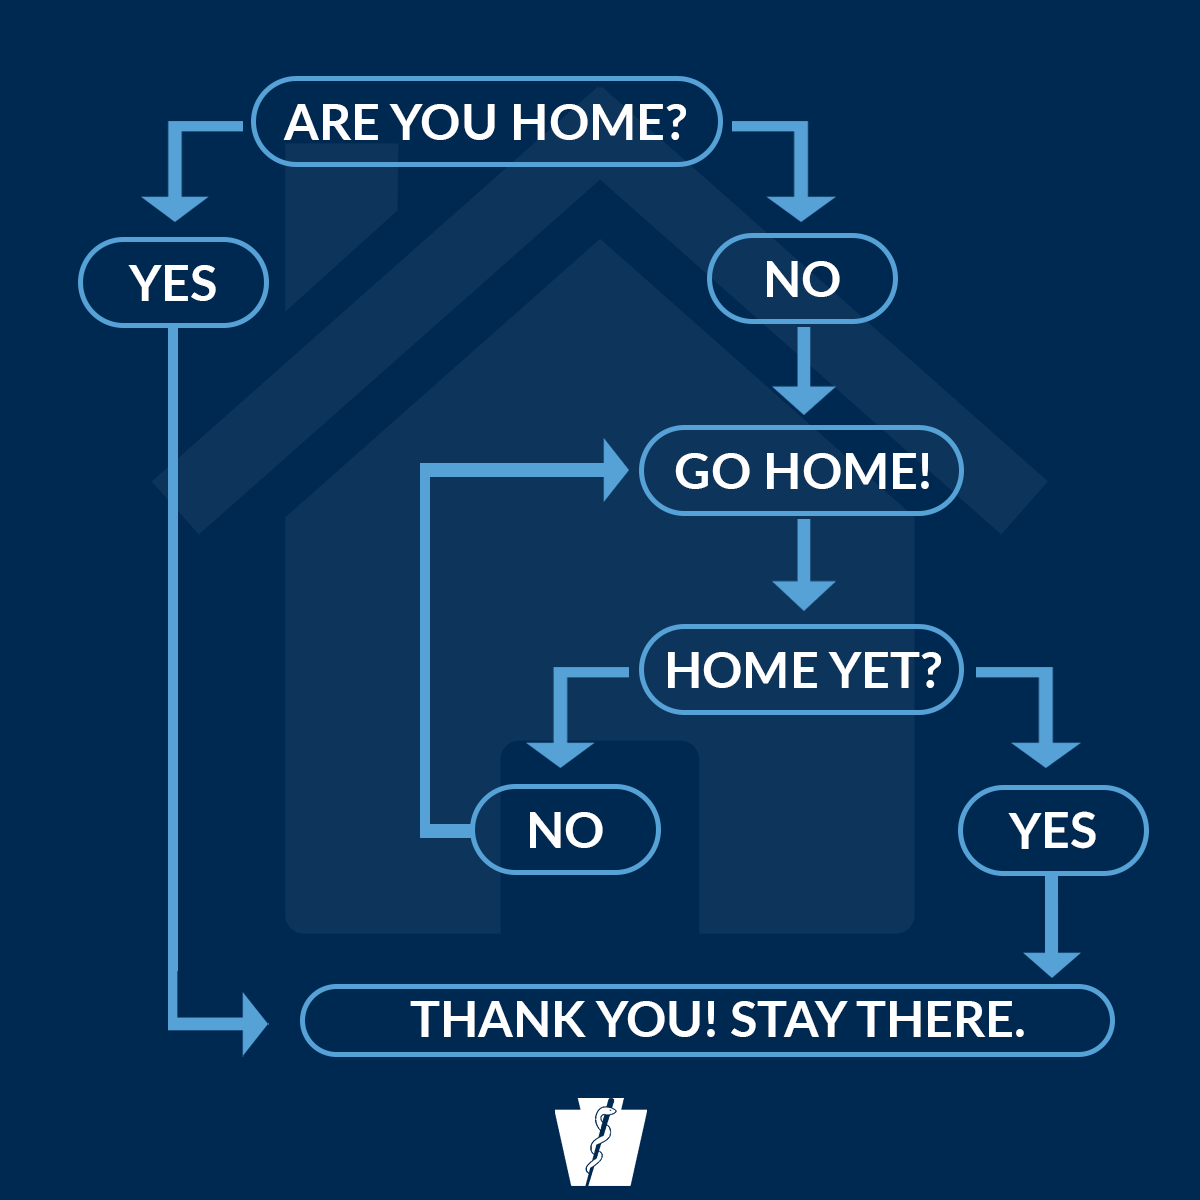 Stay at home decision tree